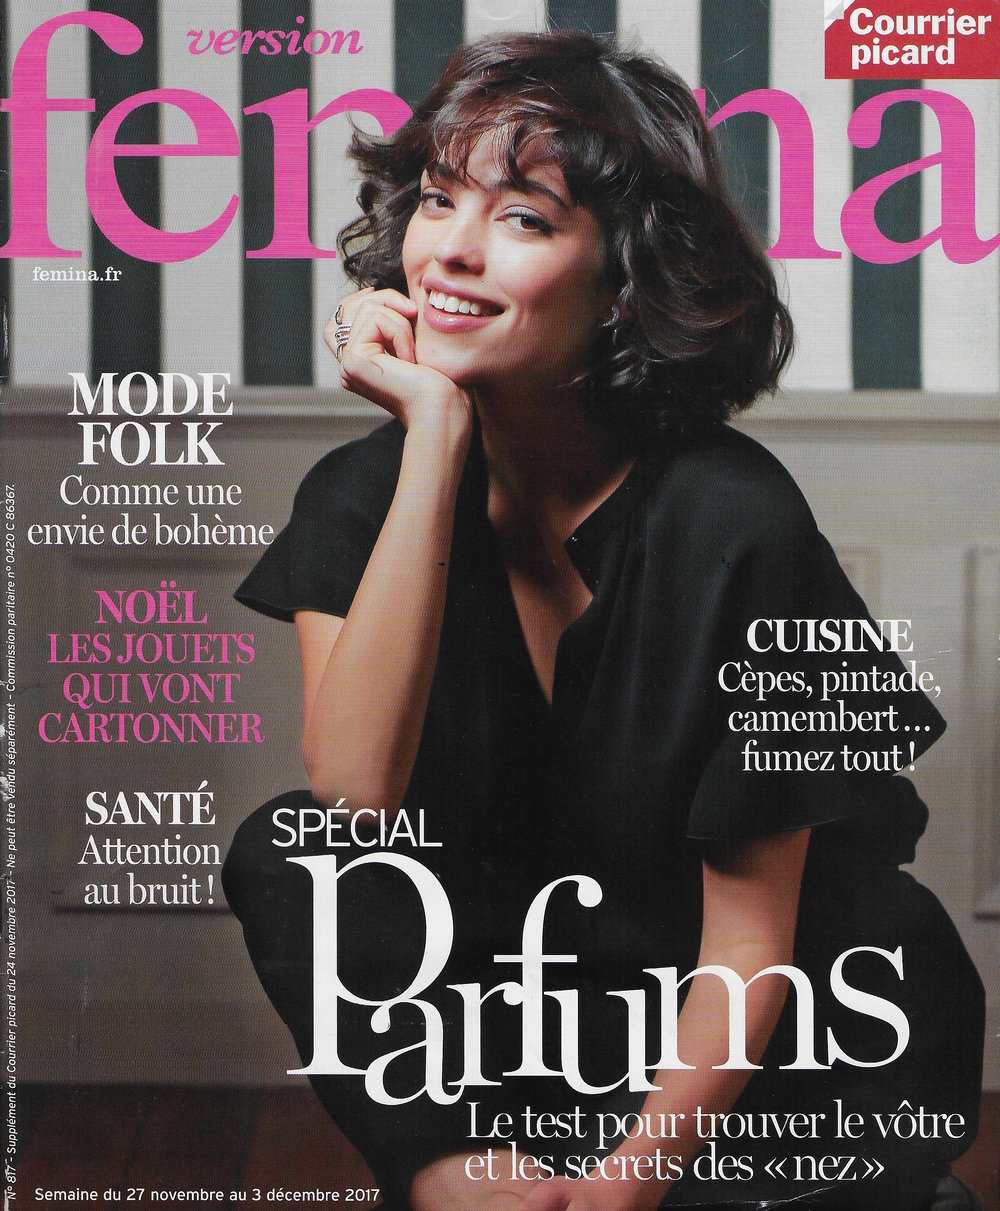 Version femina - 27 au 3Decembre 2017 - couv.jpeg